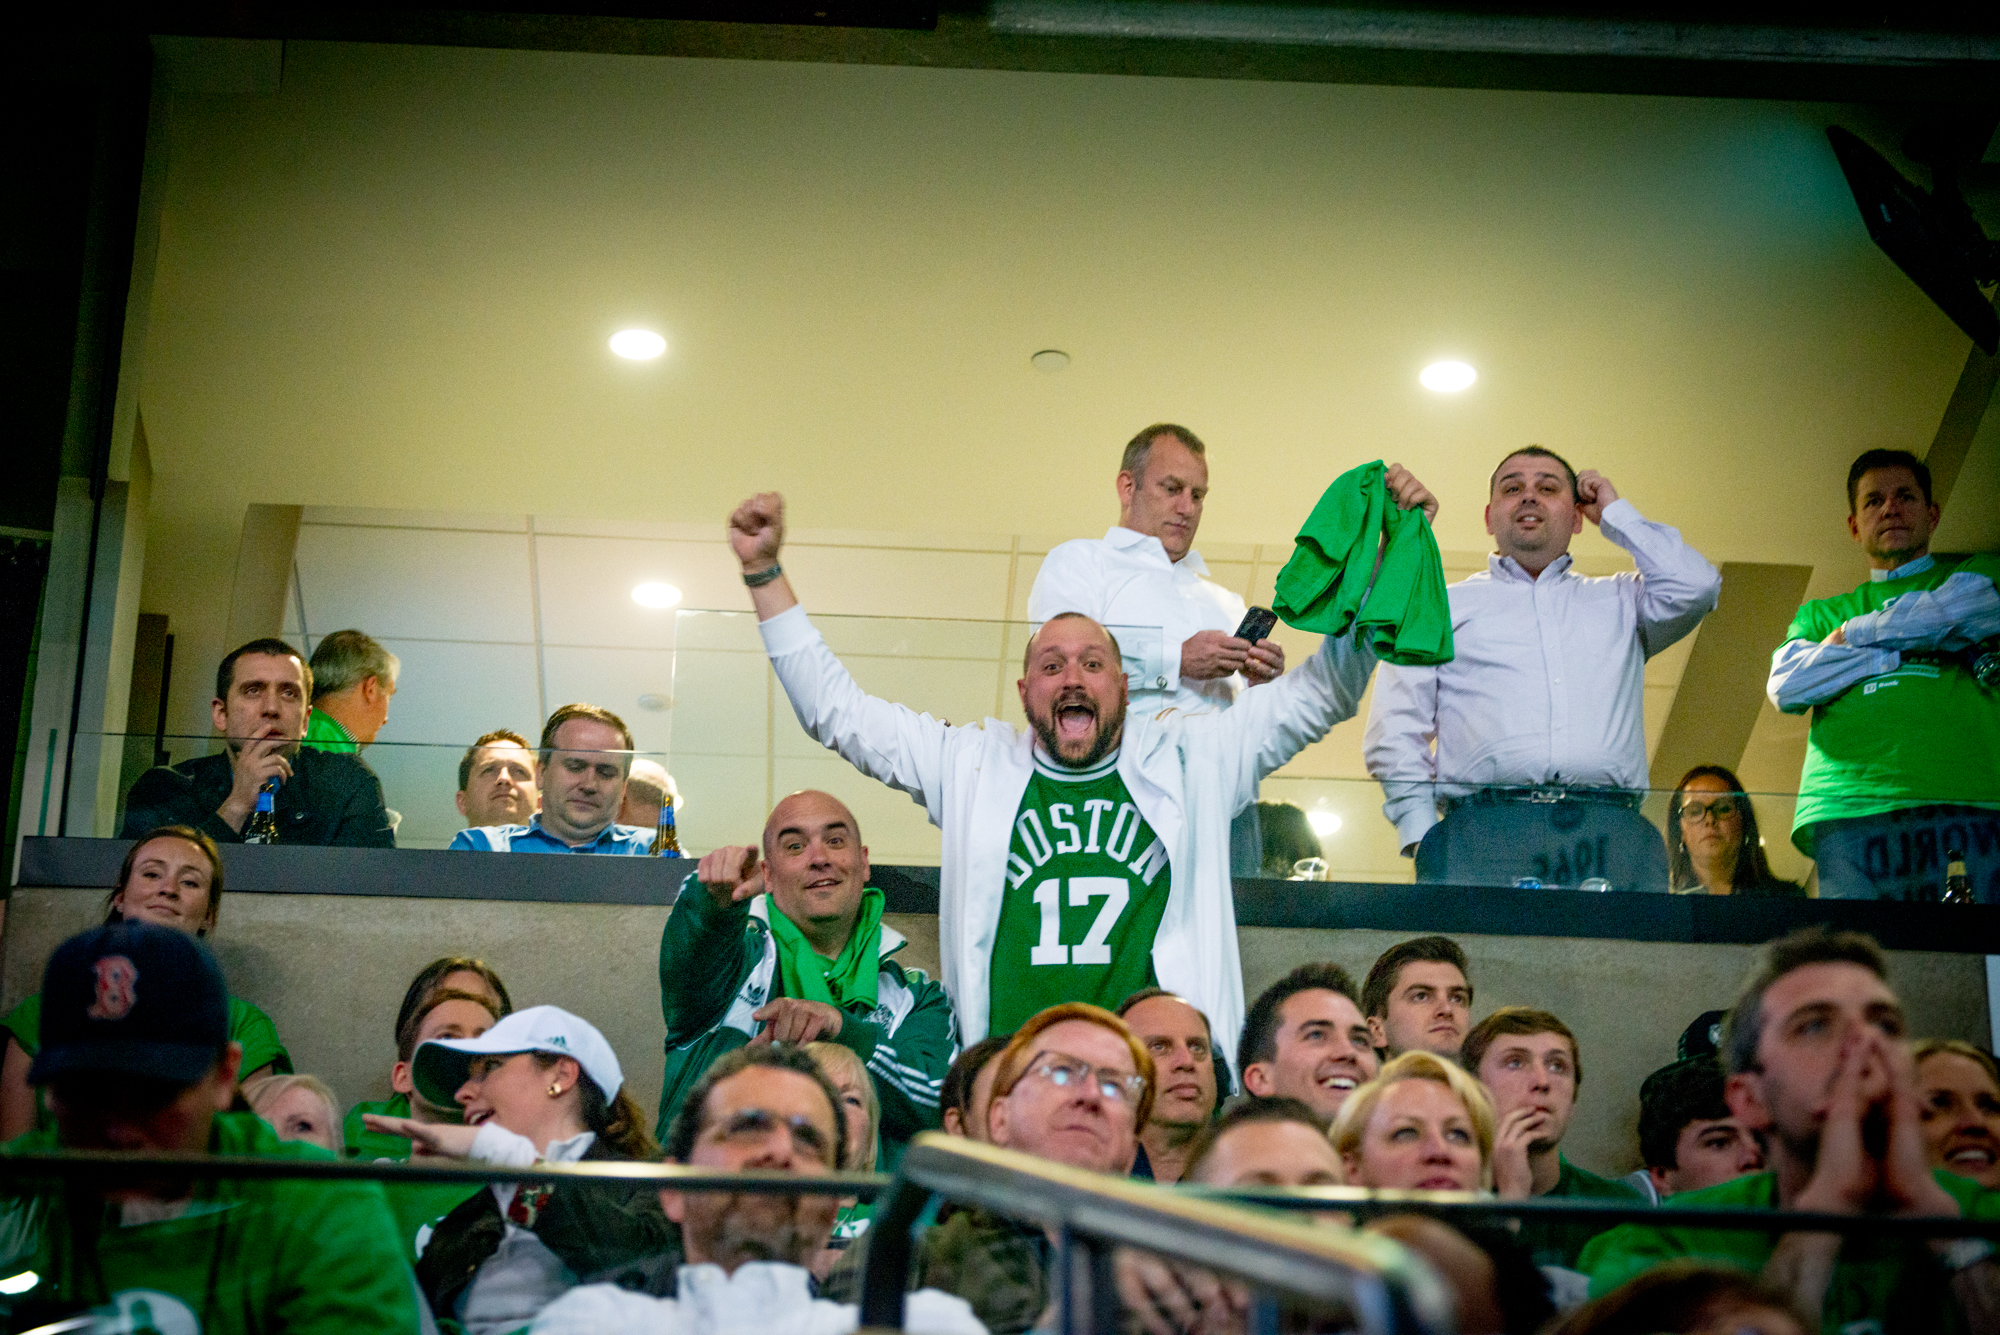 Celtics_Playoff_042916-892.jpg